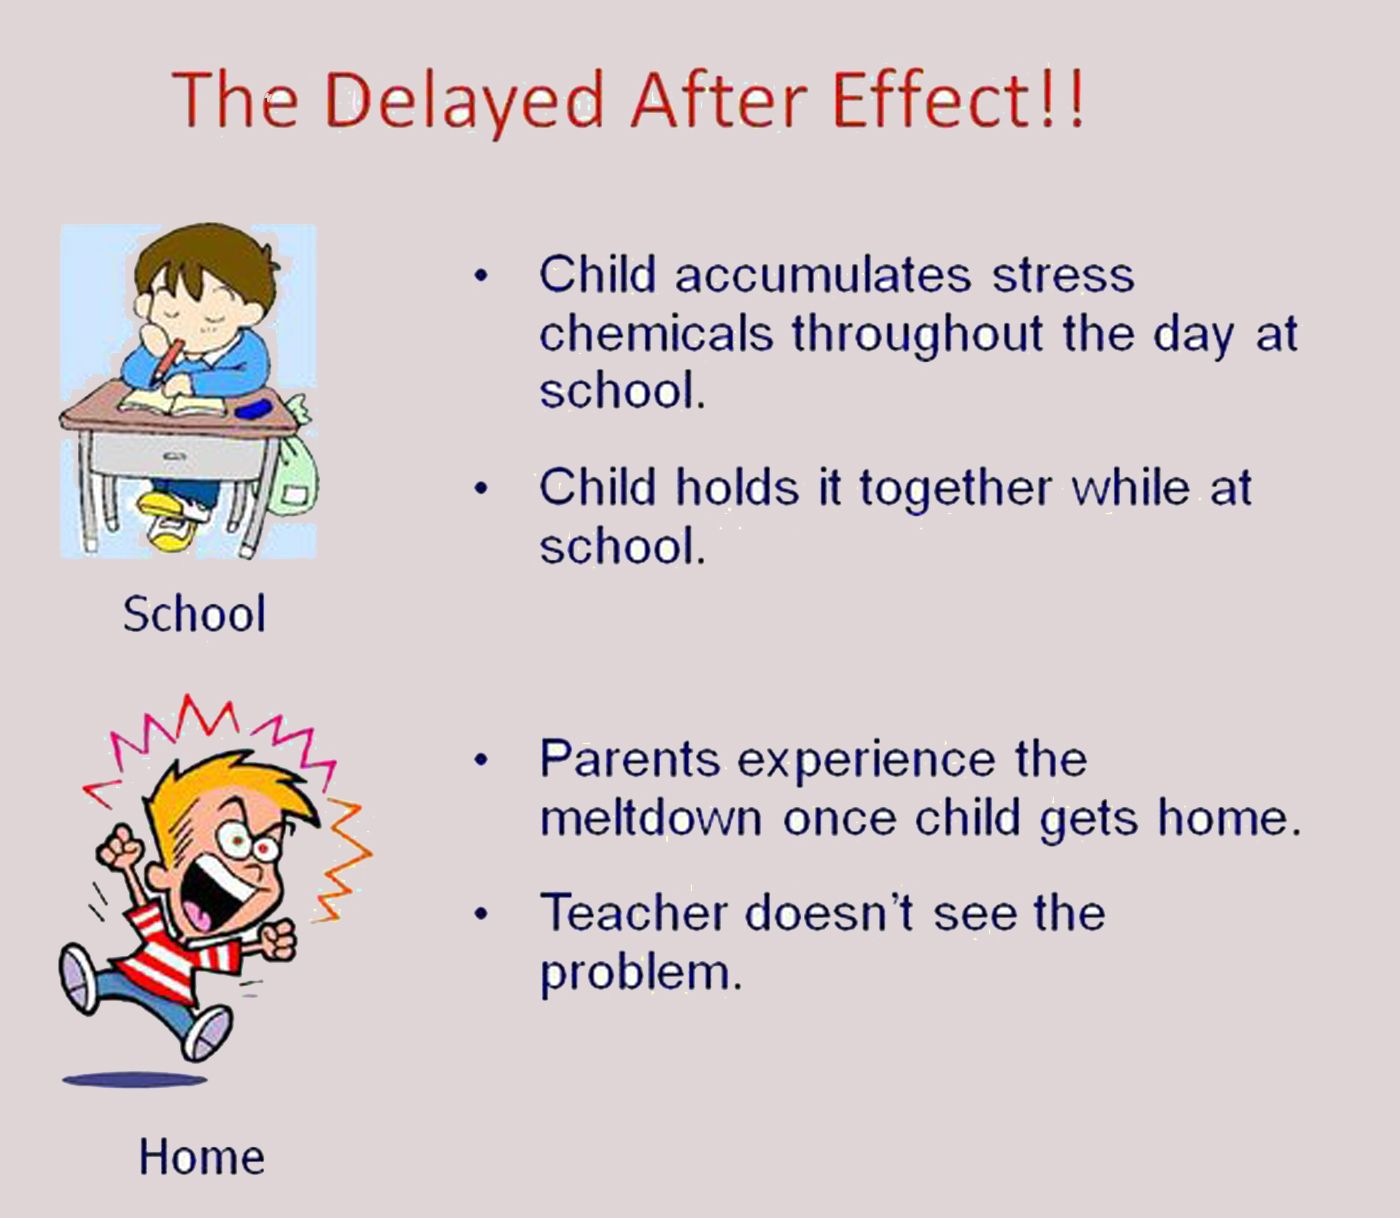 An Excellent Diagram Depicting The Delayed After Effect Of